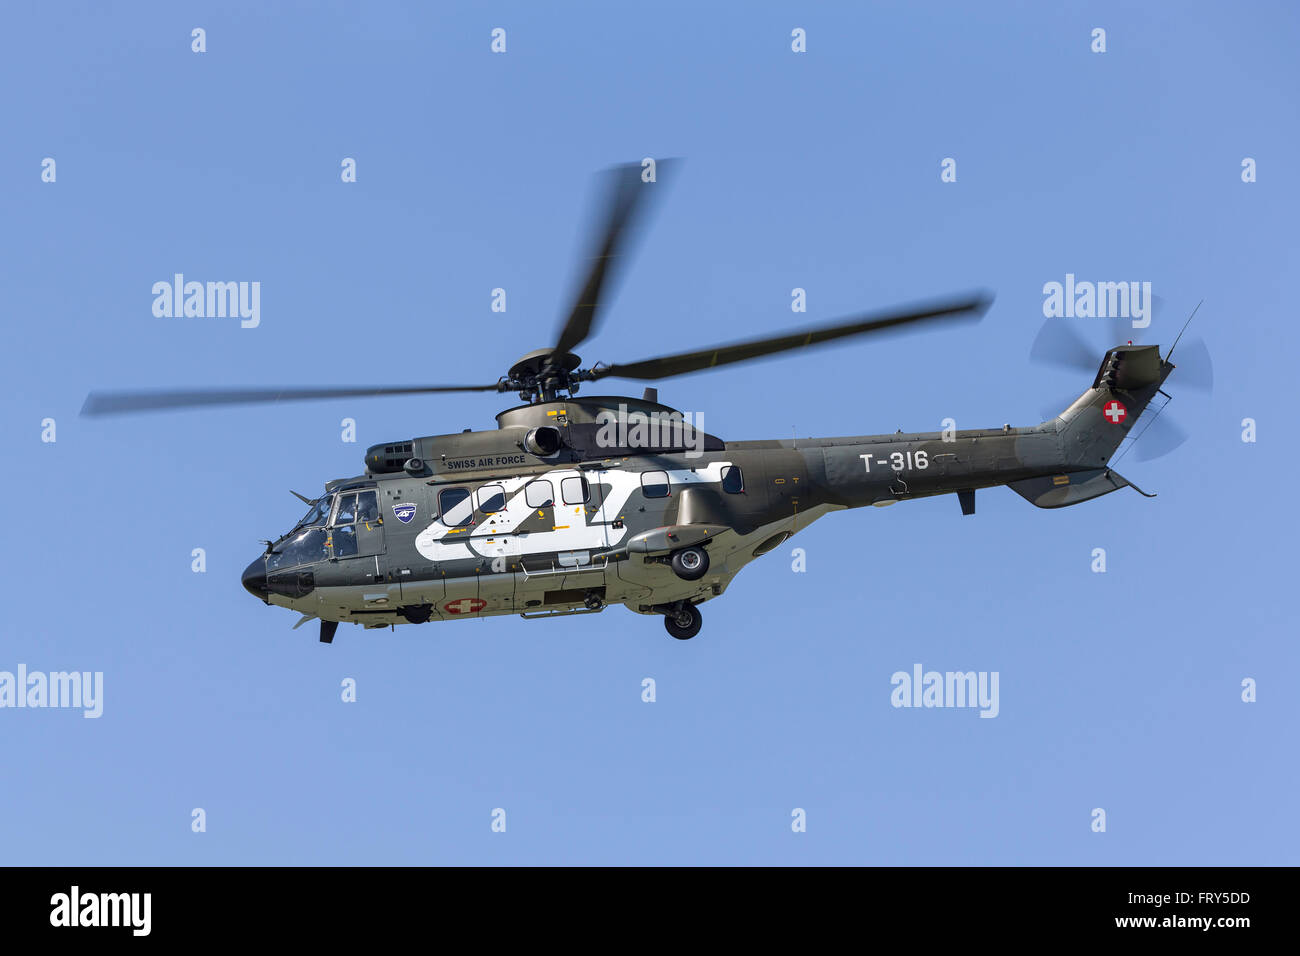 Aerospatiale AS332 (TH89) Super Puma Military helicopter T-316 from the Swiss Air Force (Schweizer Luftwaffe) - Stock Image